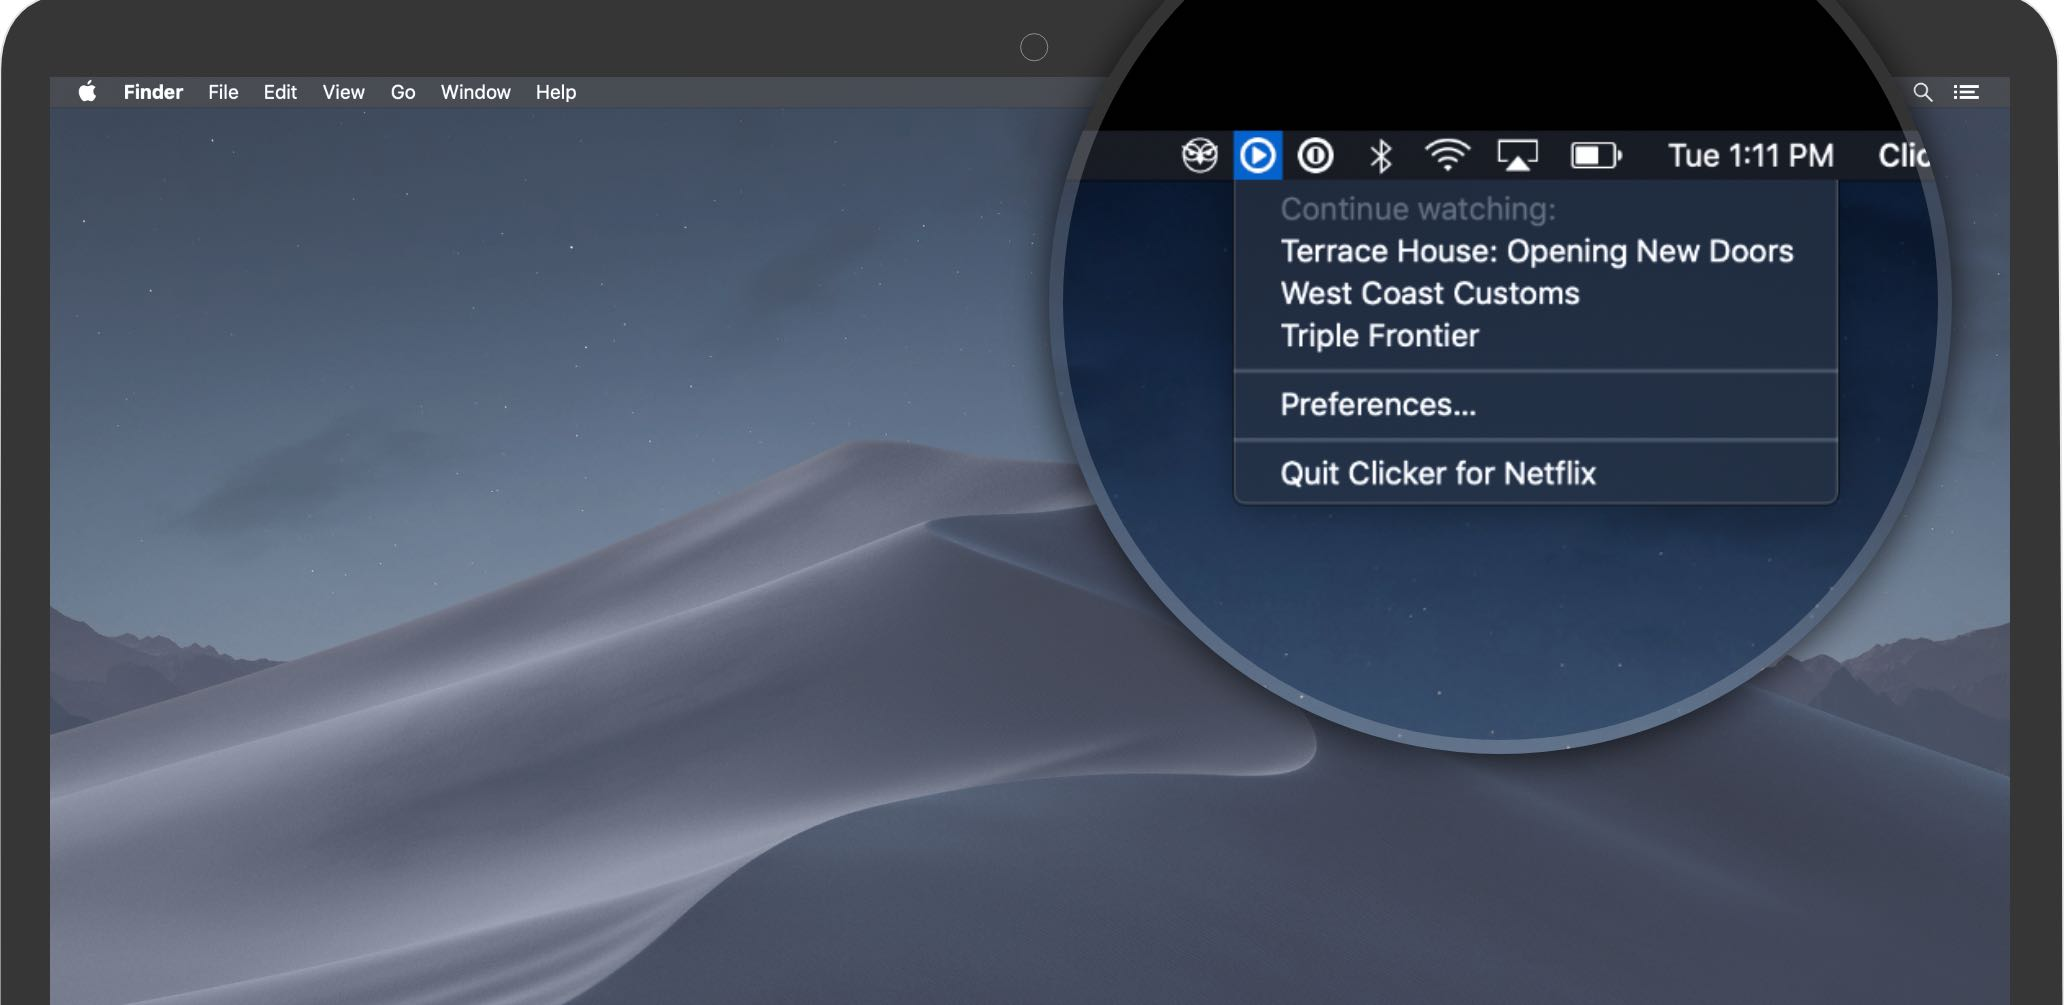 Meet Clicker, a native Netflix player for your Mac with